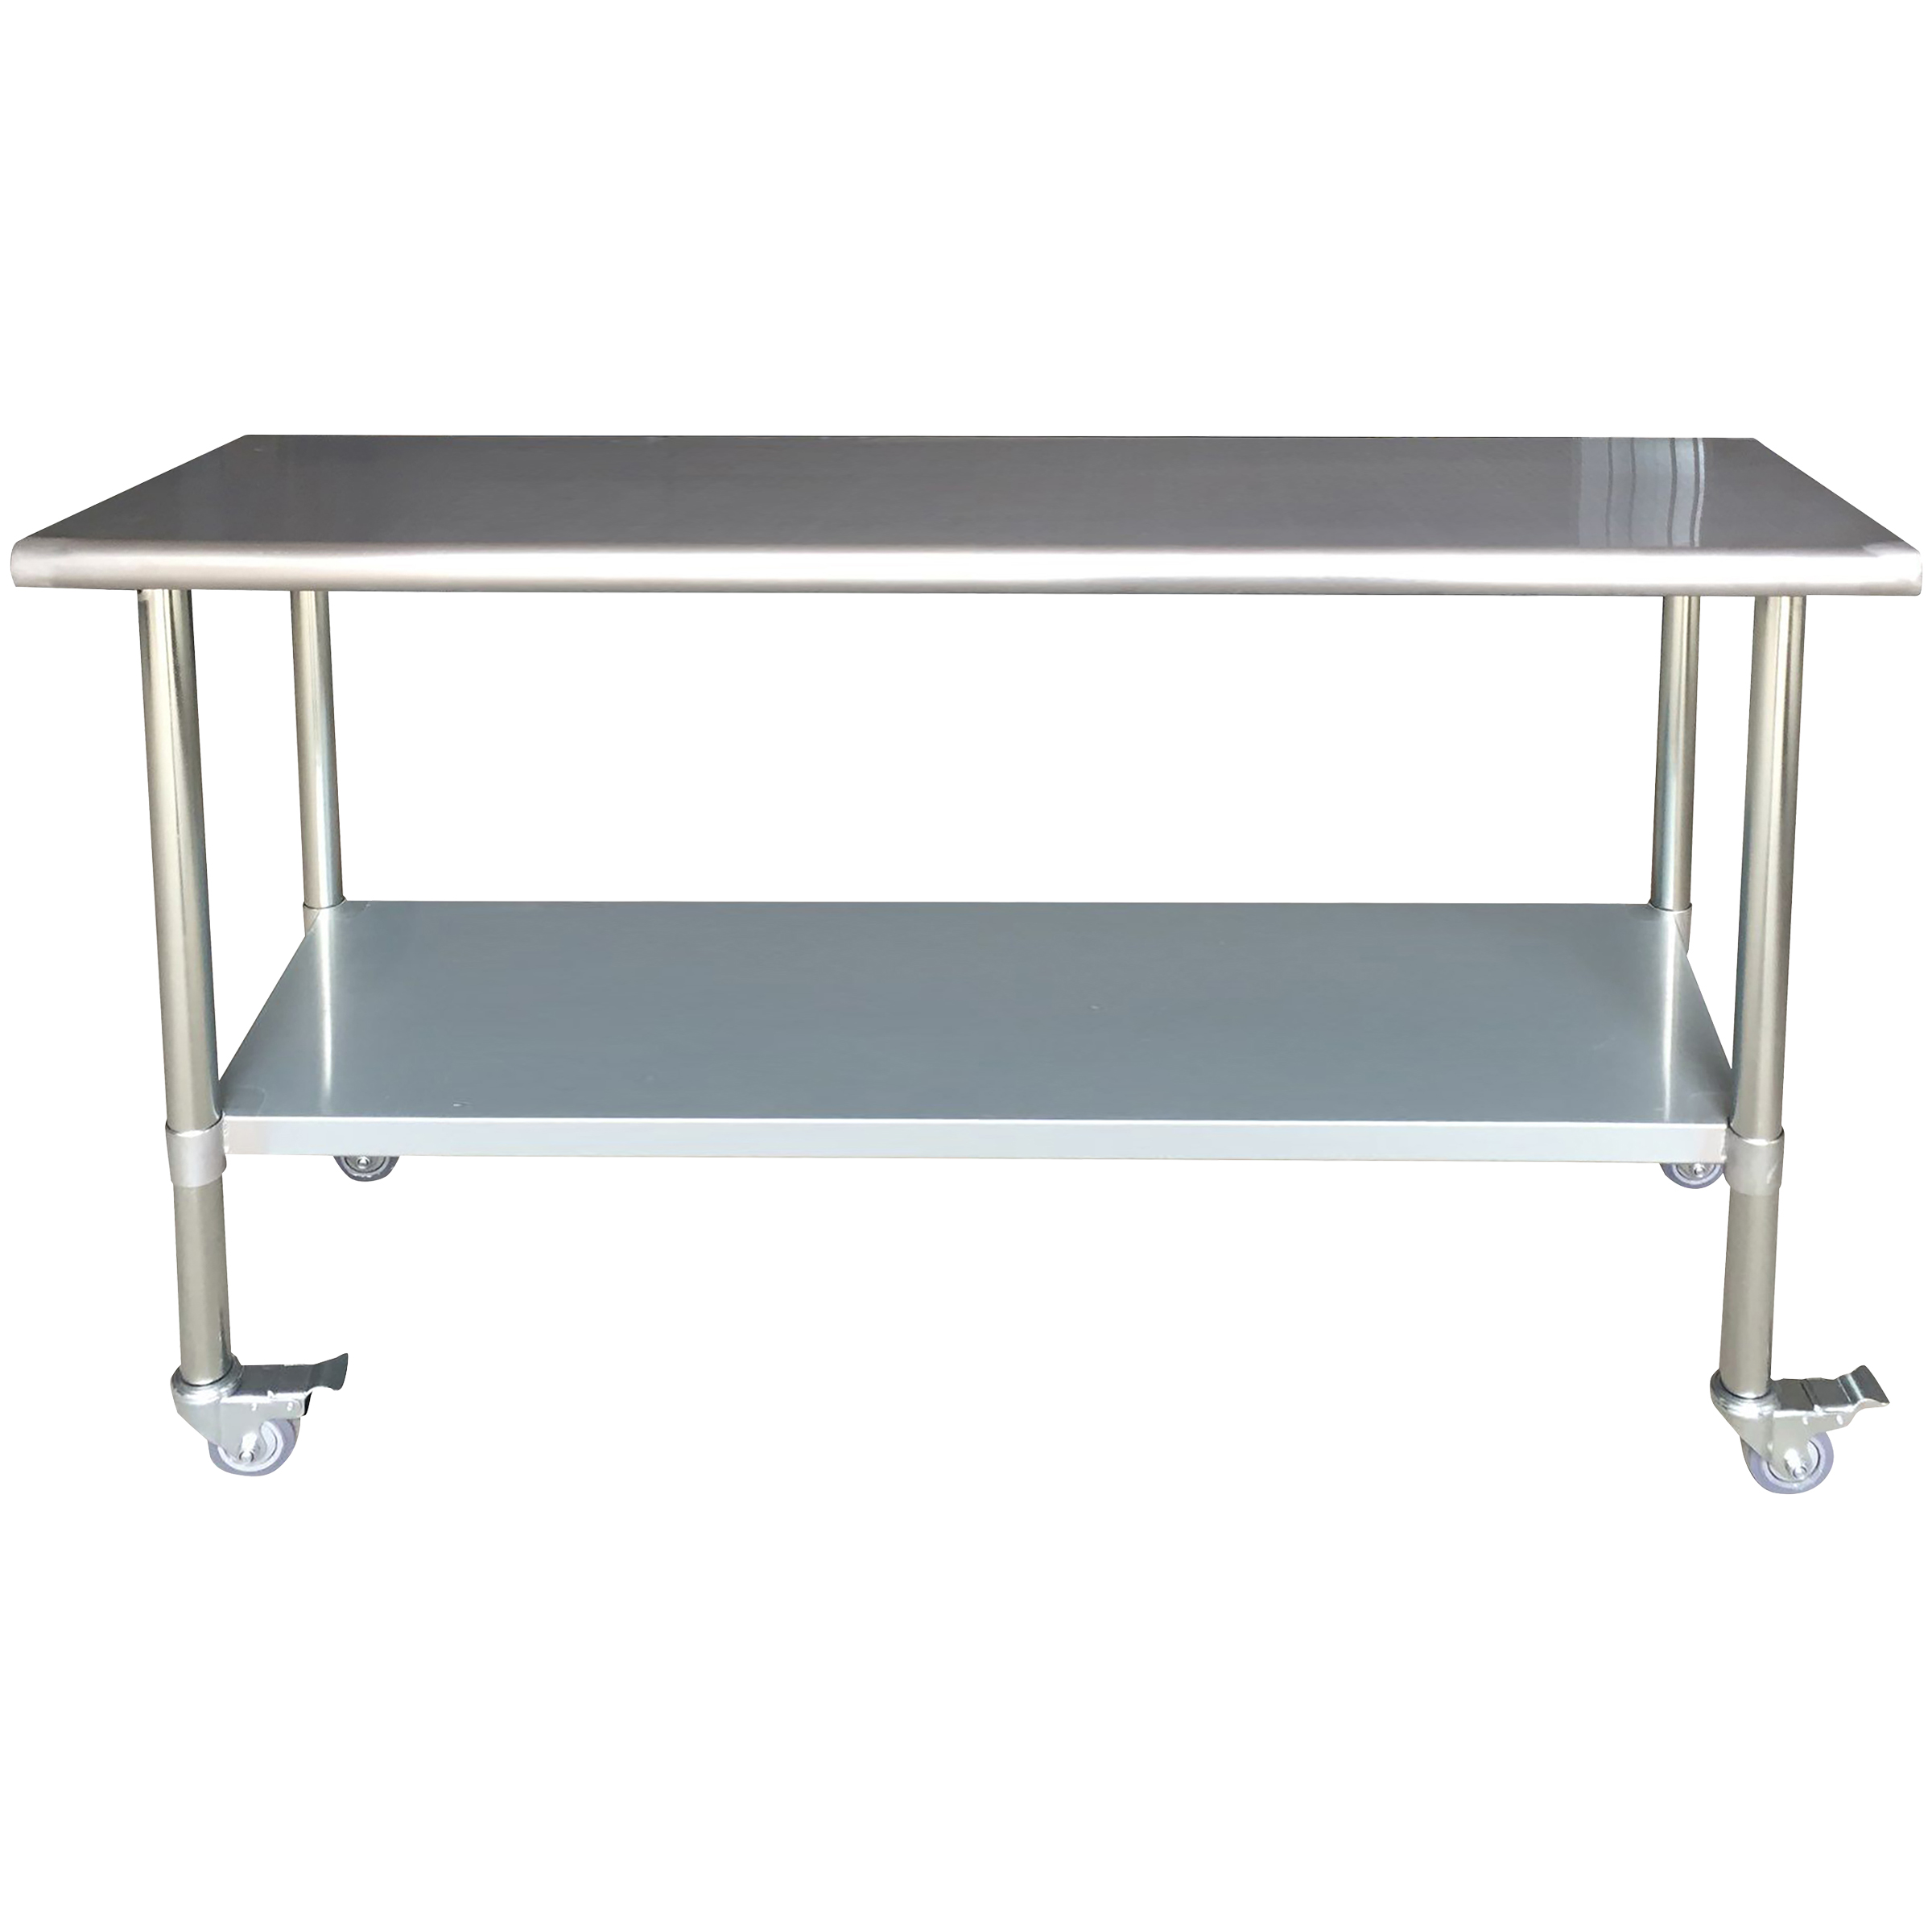 Stainless Steel Work Table with Casters 24 x 72 Inches